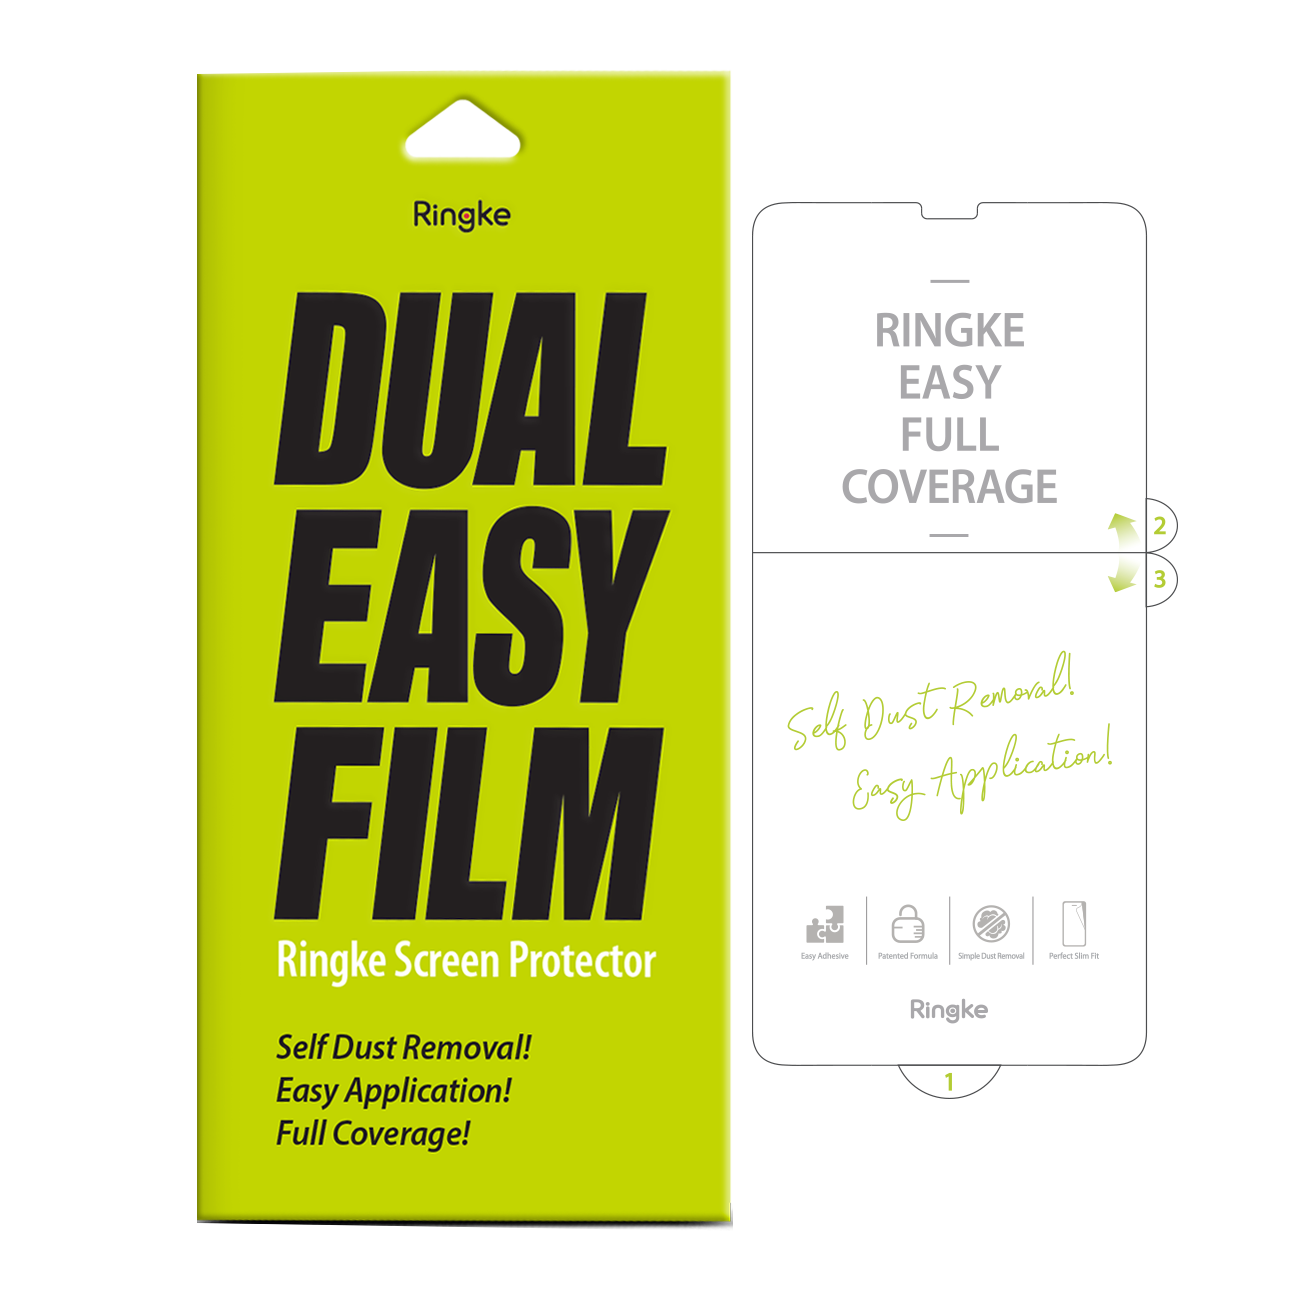 Ringke DUAL EASY SCREEN PROTECTOR